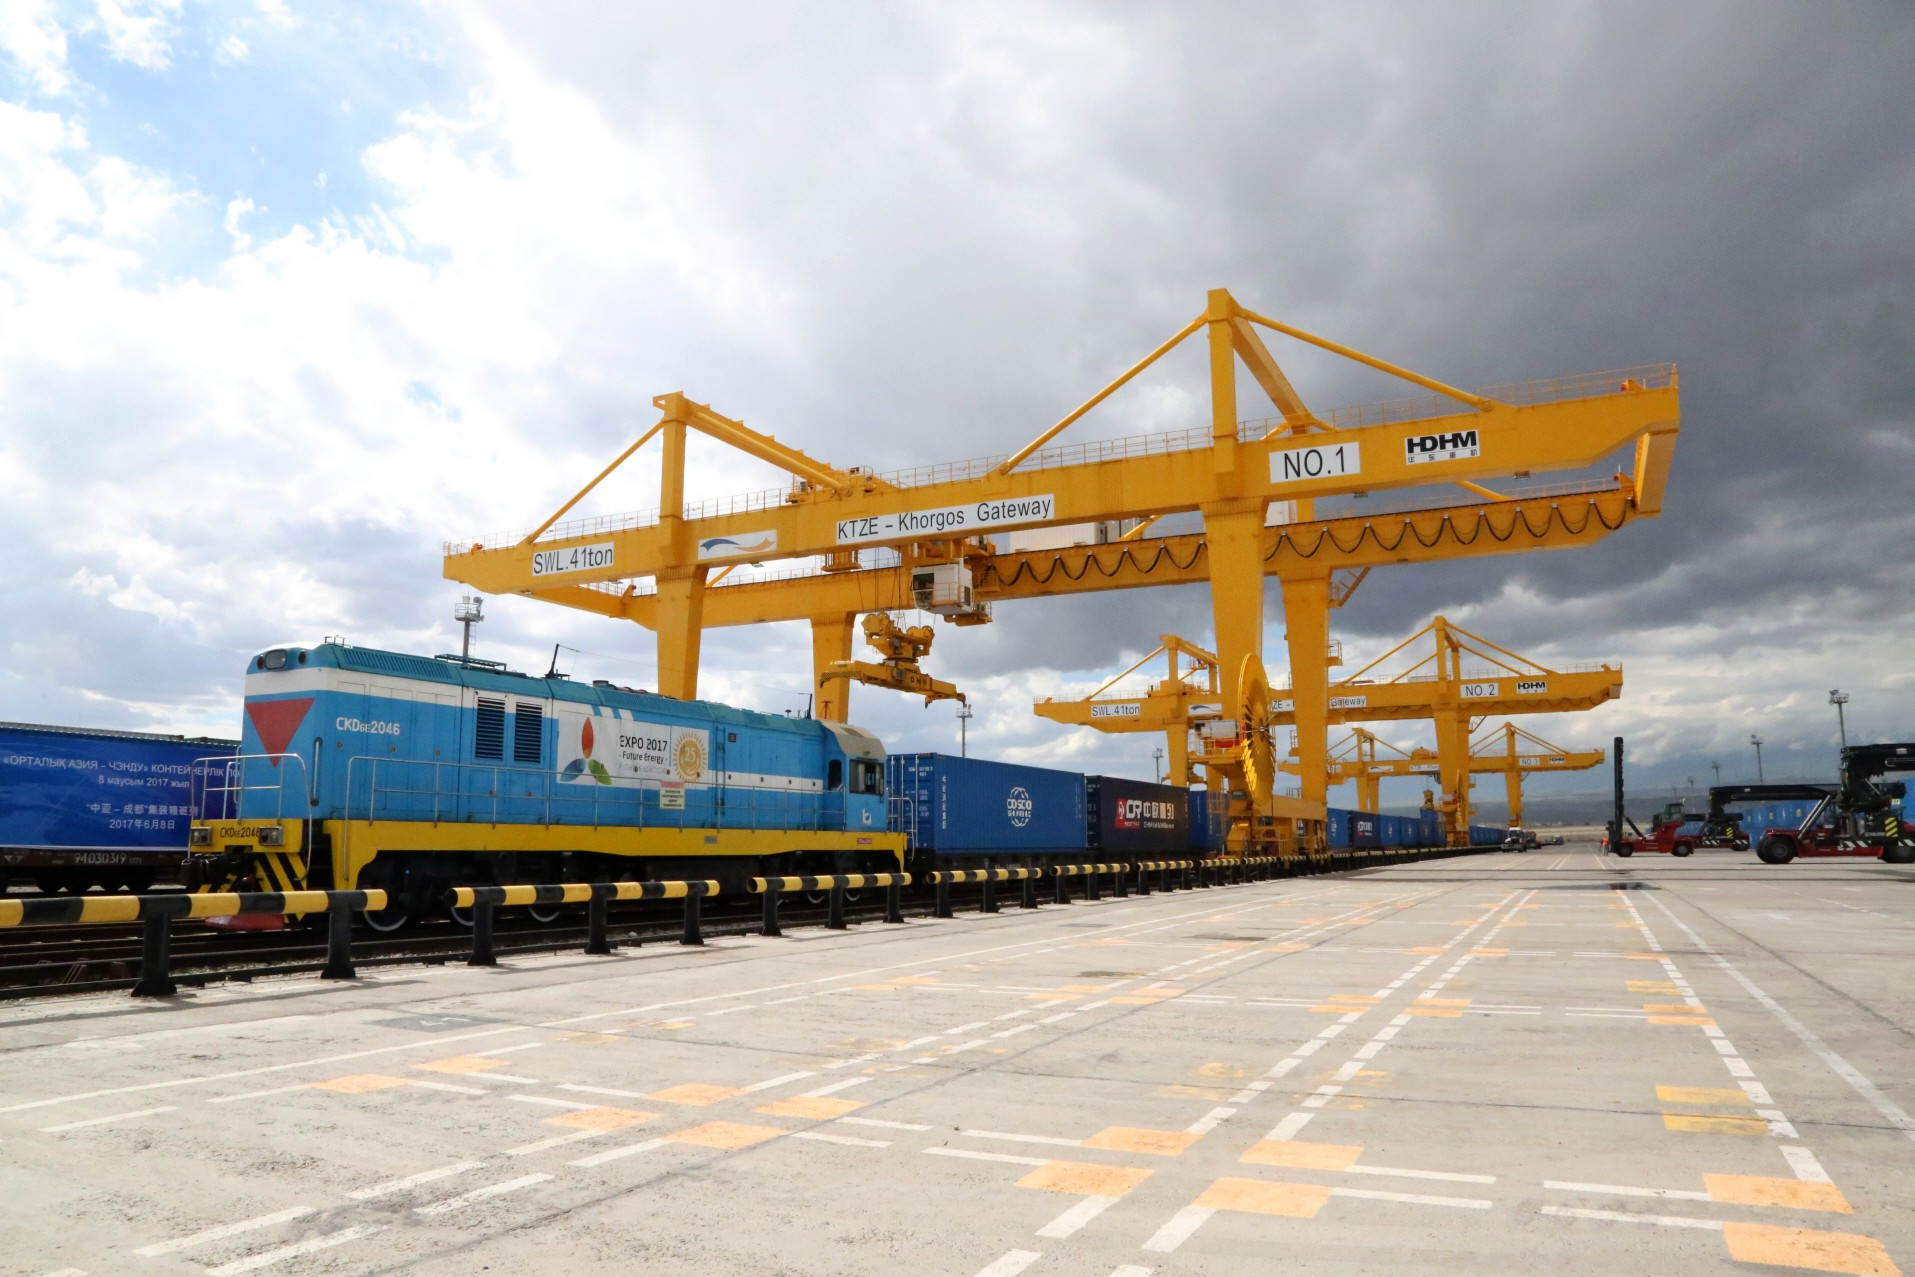 Cosco leading China's 'Belt and Road' drive - Nikkei Asian